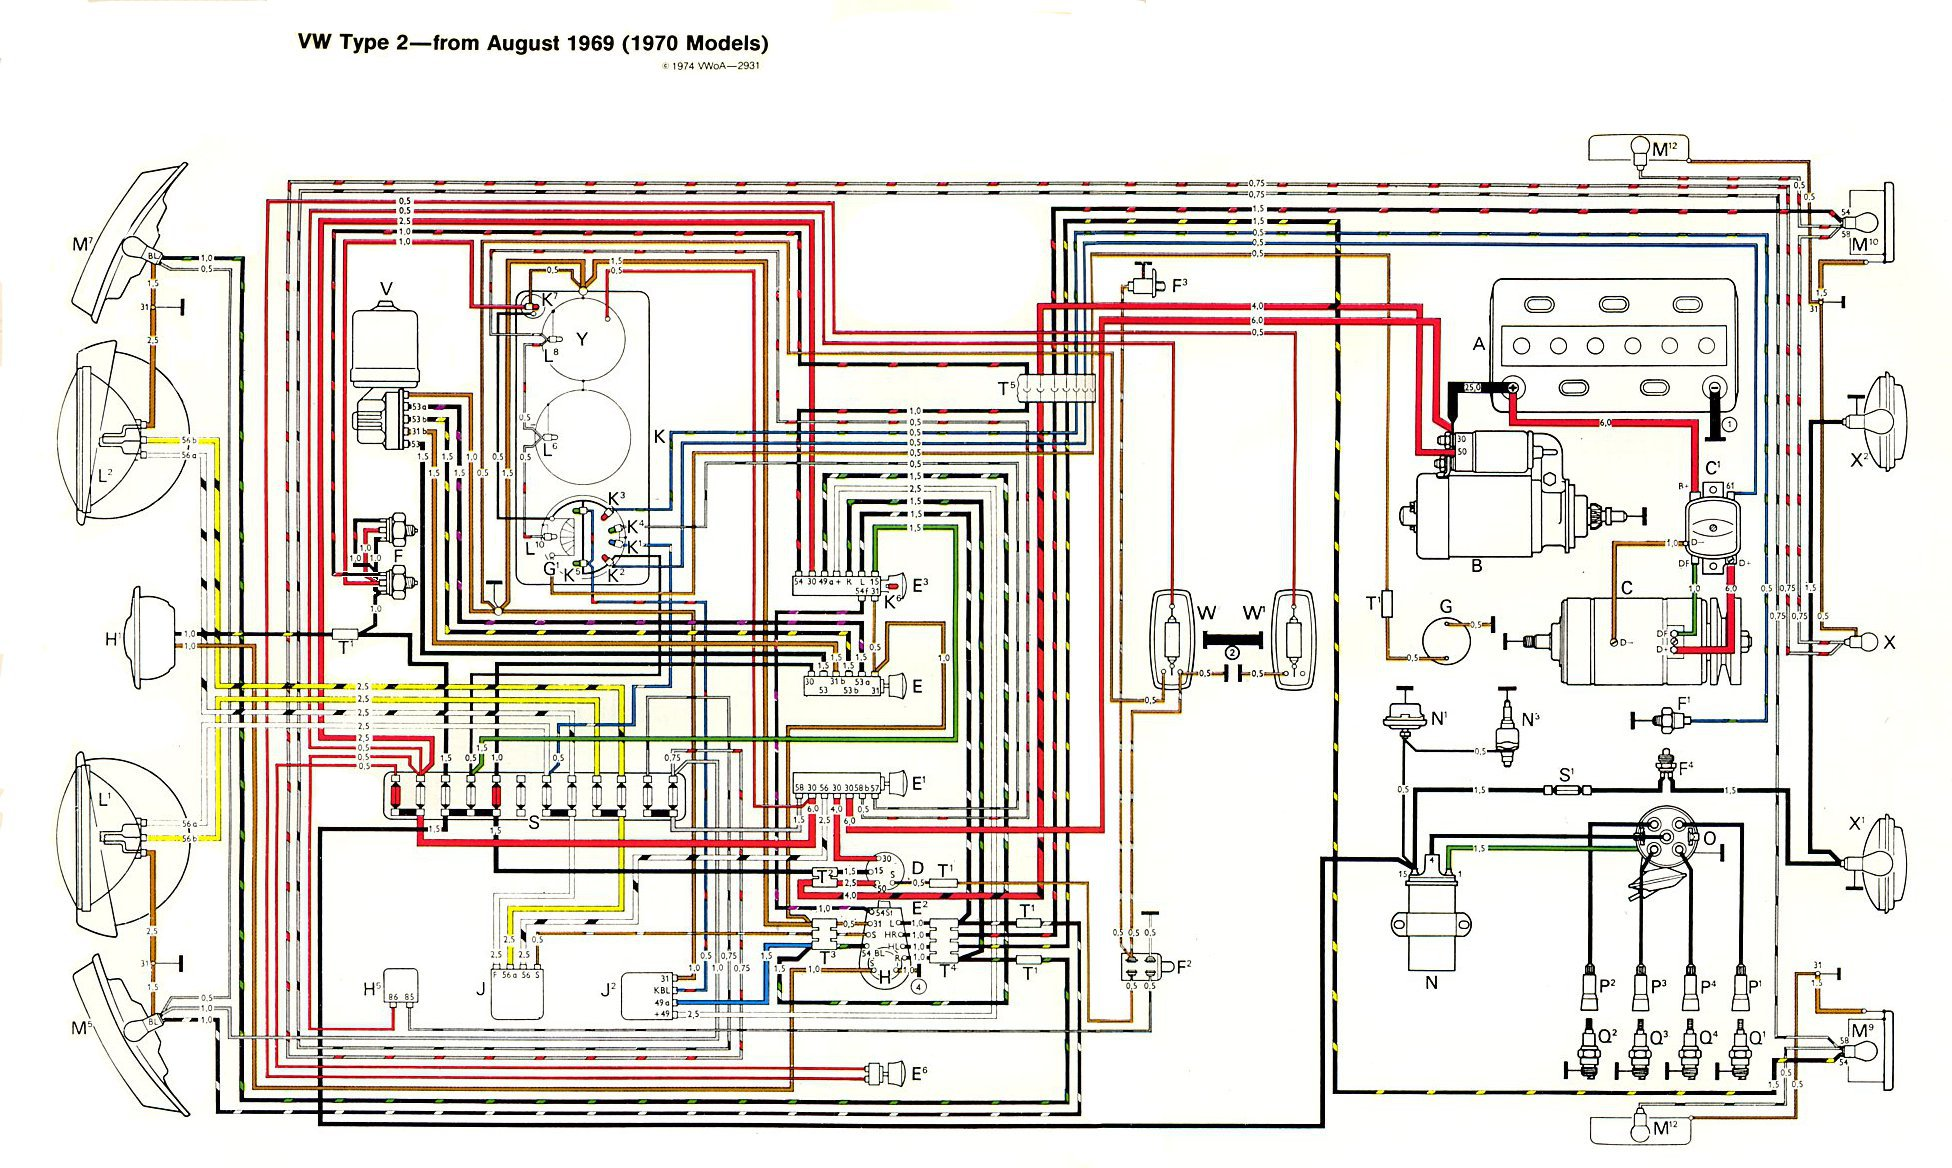 baybus_70 thesamba com type 2 wiring diagrams 914 wiring diagram at gsmx.co